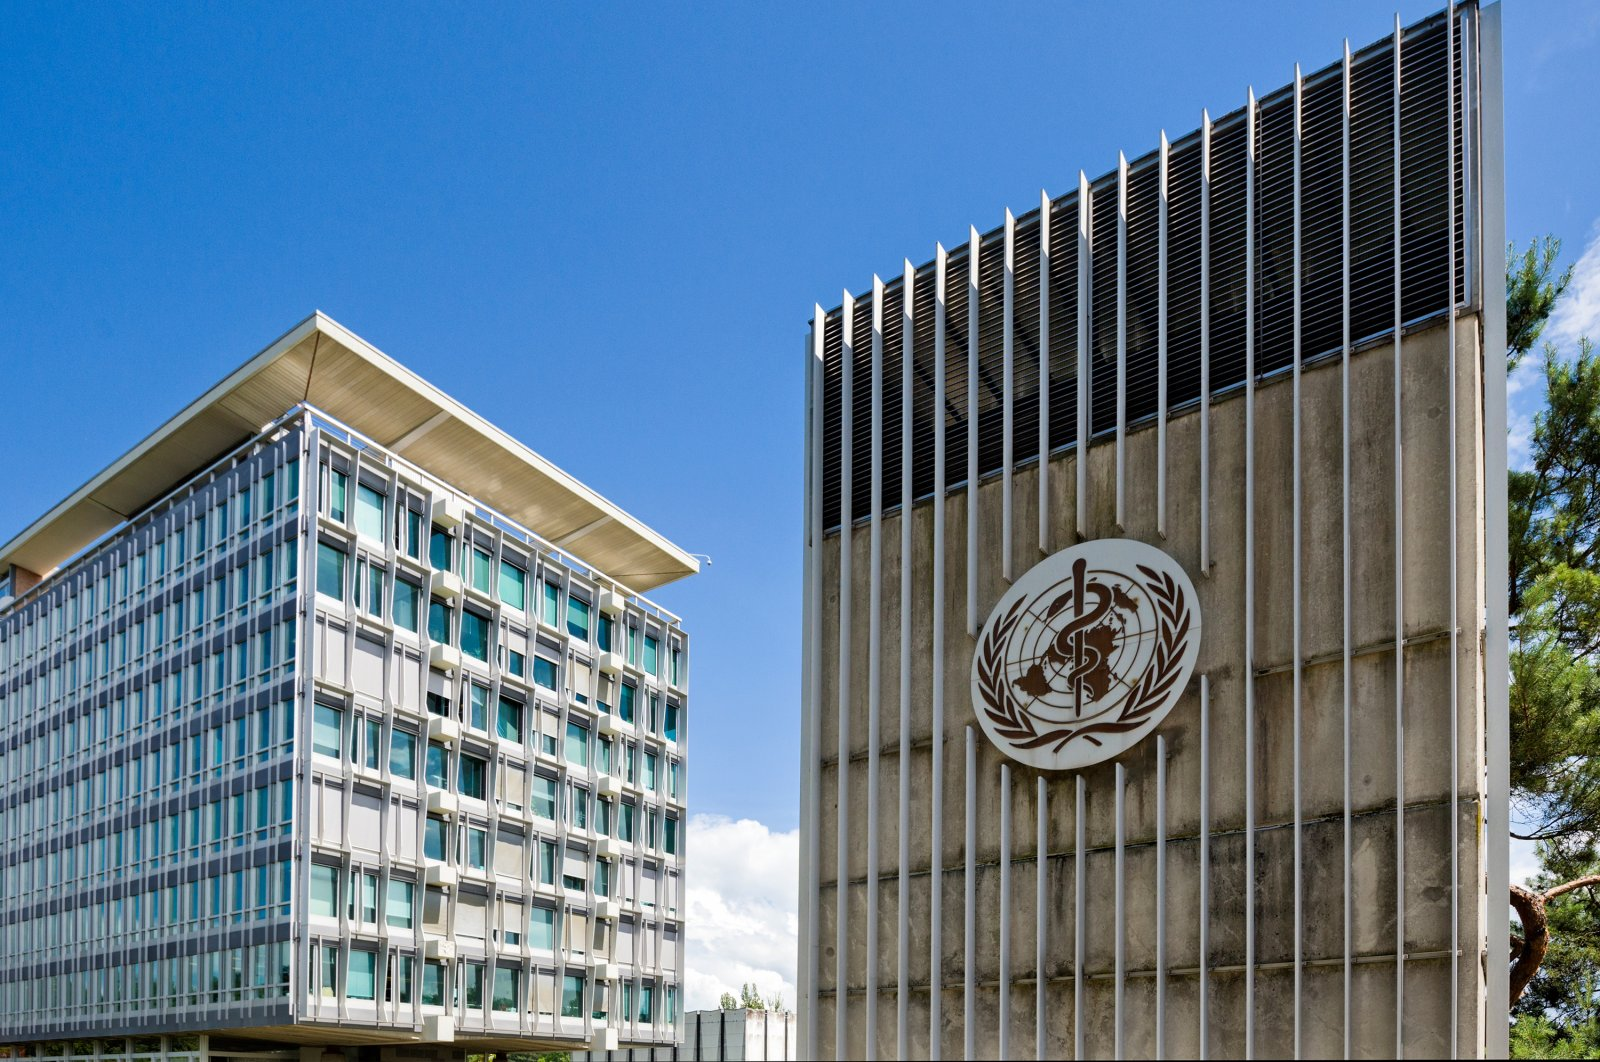 The World Health Organization (WHO) headquarters situated on the outskirts of Geneva, Switzerland, June 6, 2018. (Shutterstock Photo)